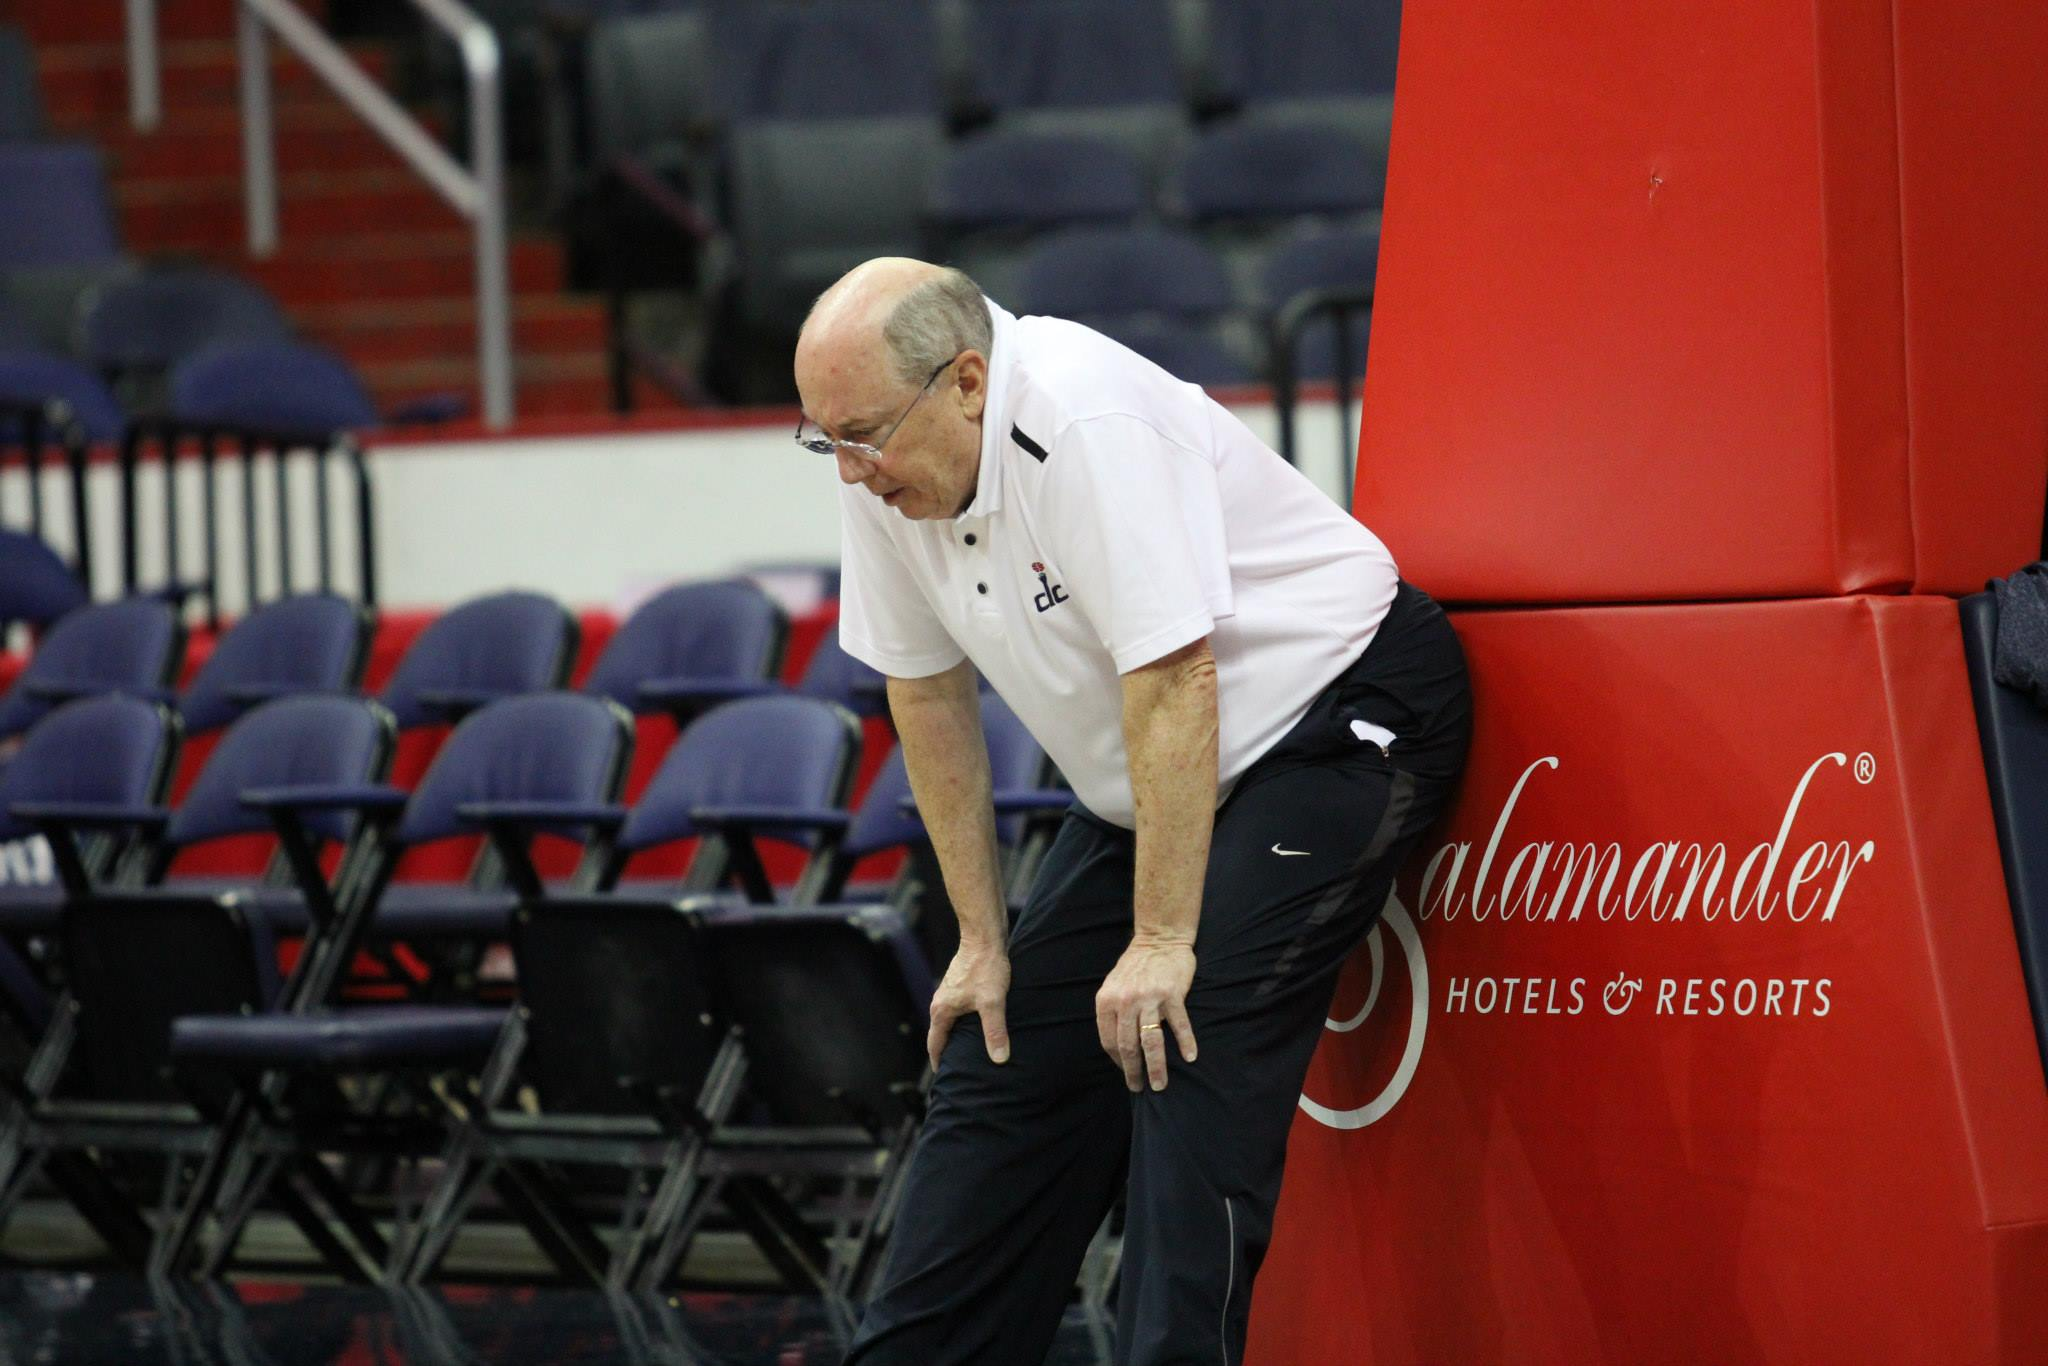 Mystics GM/HC Mike Thibault led Washington to consecutive playoff berths. However, his team needs a superstar talent if it's going to take the next step.